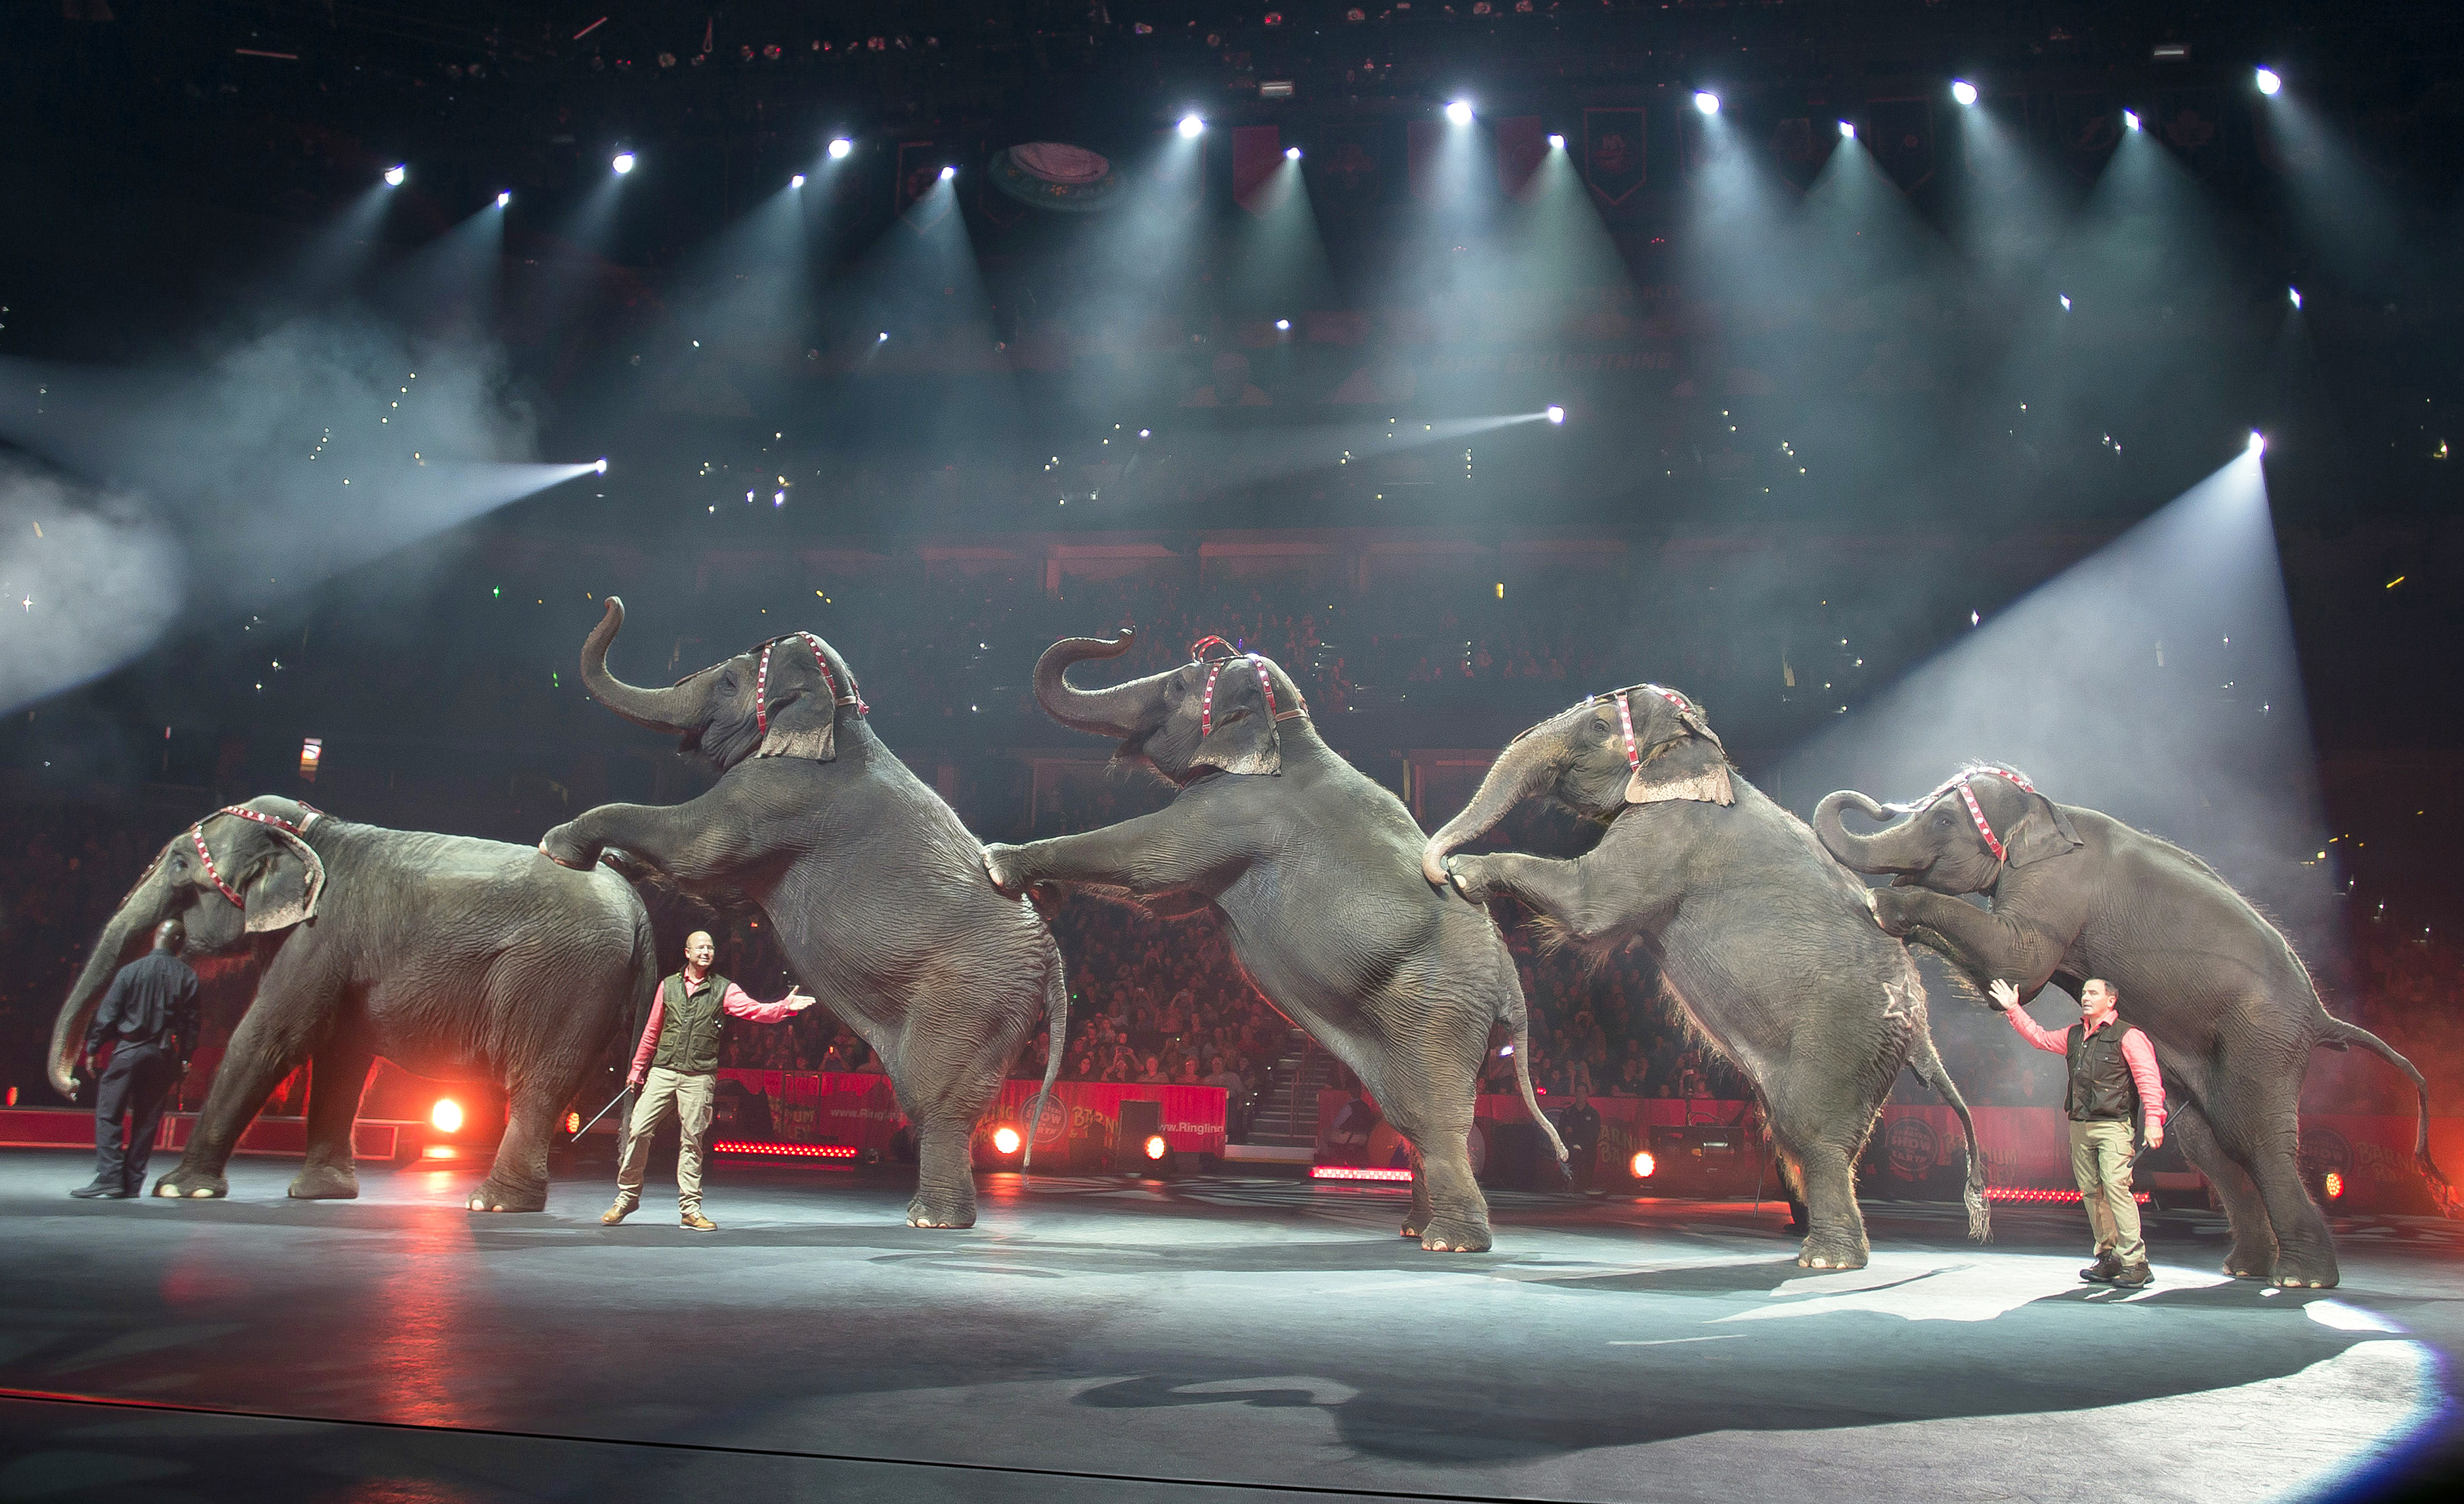 In this Jan. 3, 2015 photo, elephants perform at the Ringling Bros. and Barnum & Bailey Circus, at the Amalie Arena in Tampa, Florida.